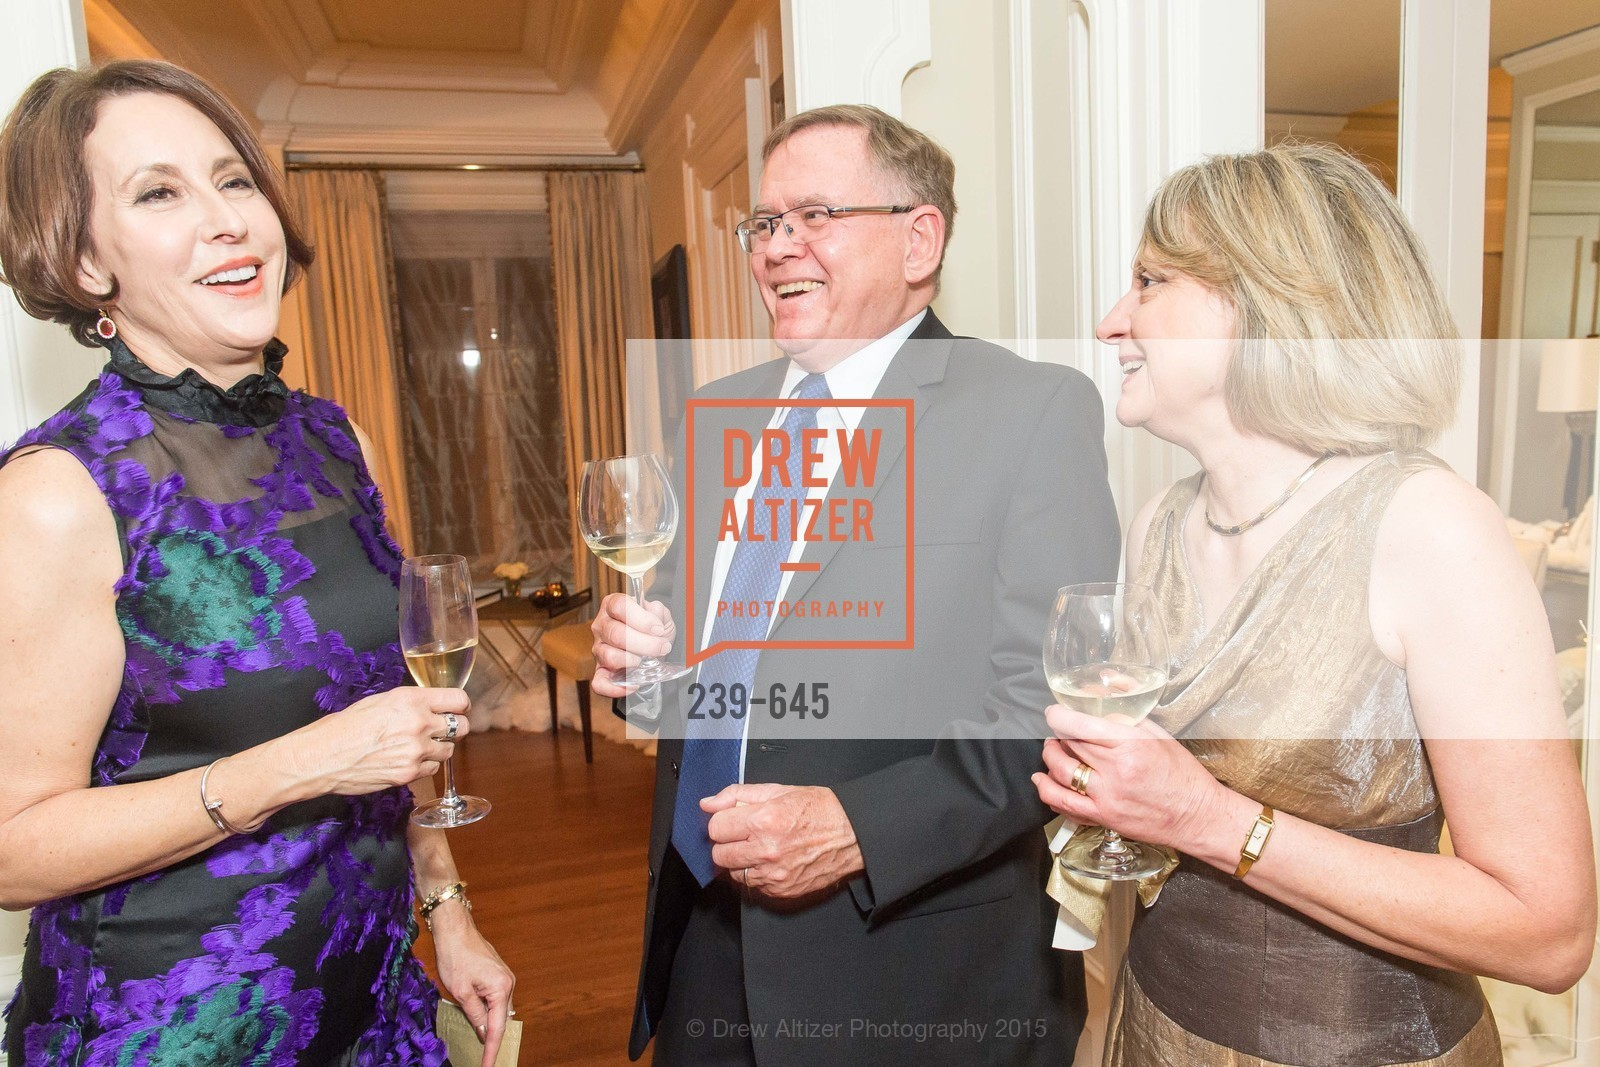 Susan Atherton, Louie Botha, Wendy Botha, Atherton Holiday Party, Private Residence, December 12th, 2015,Drew Altizer, Drew Altizer Photography, full-service event agency, private events, San Francisco photographer, photographer California